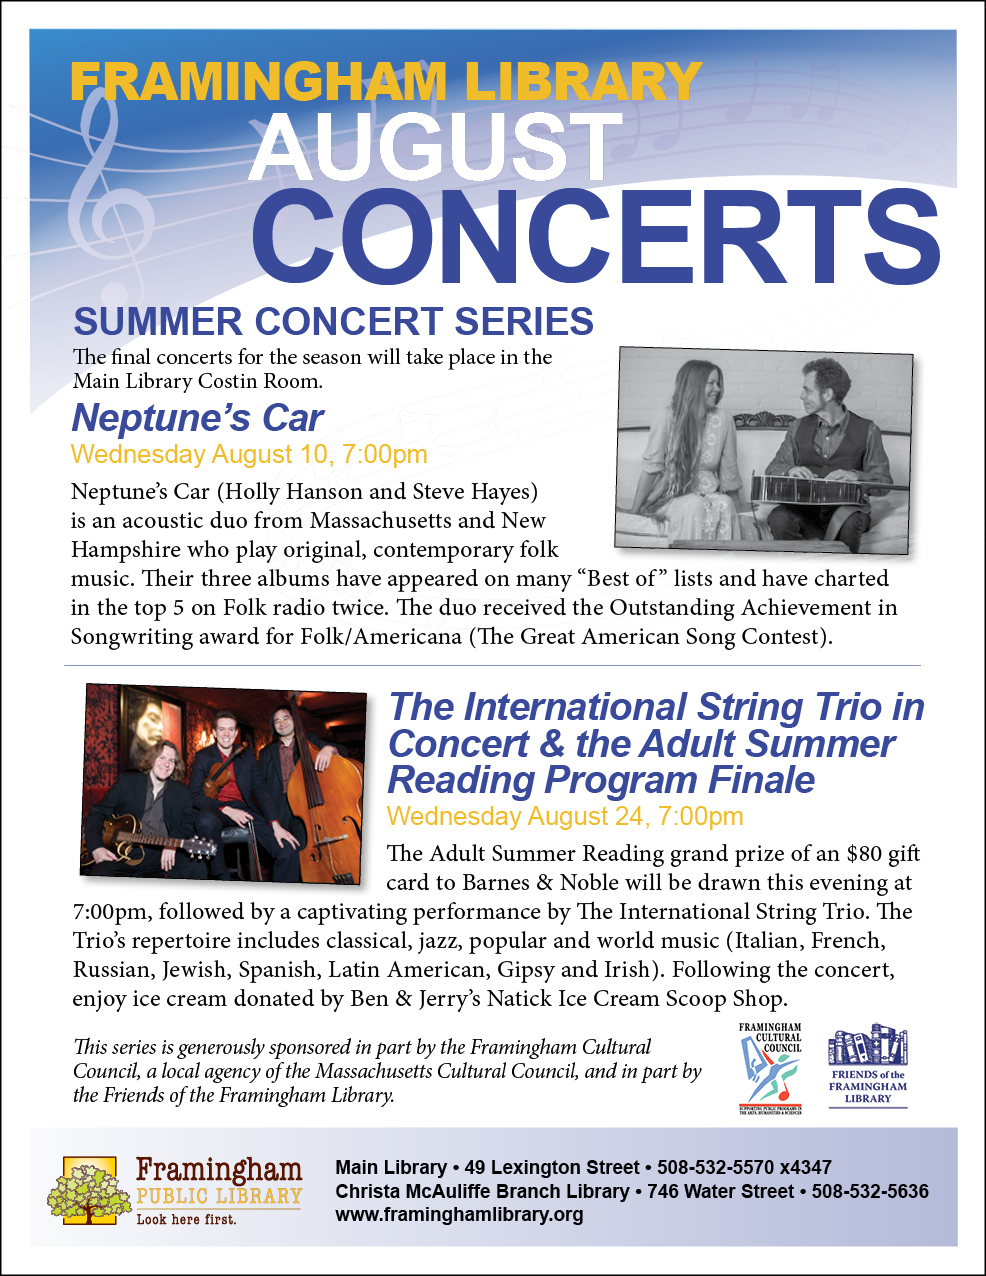 The International String Trio in Concert graphic